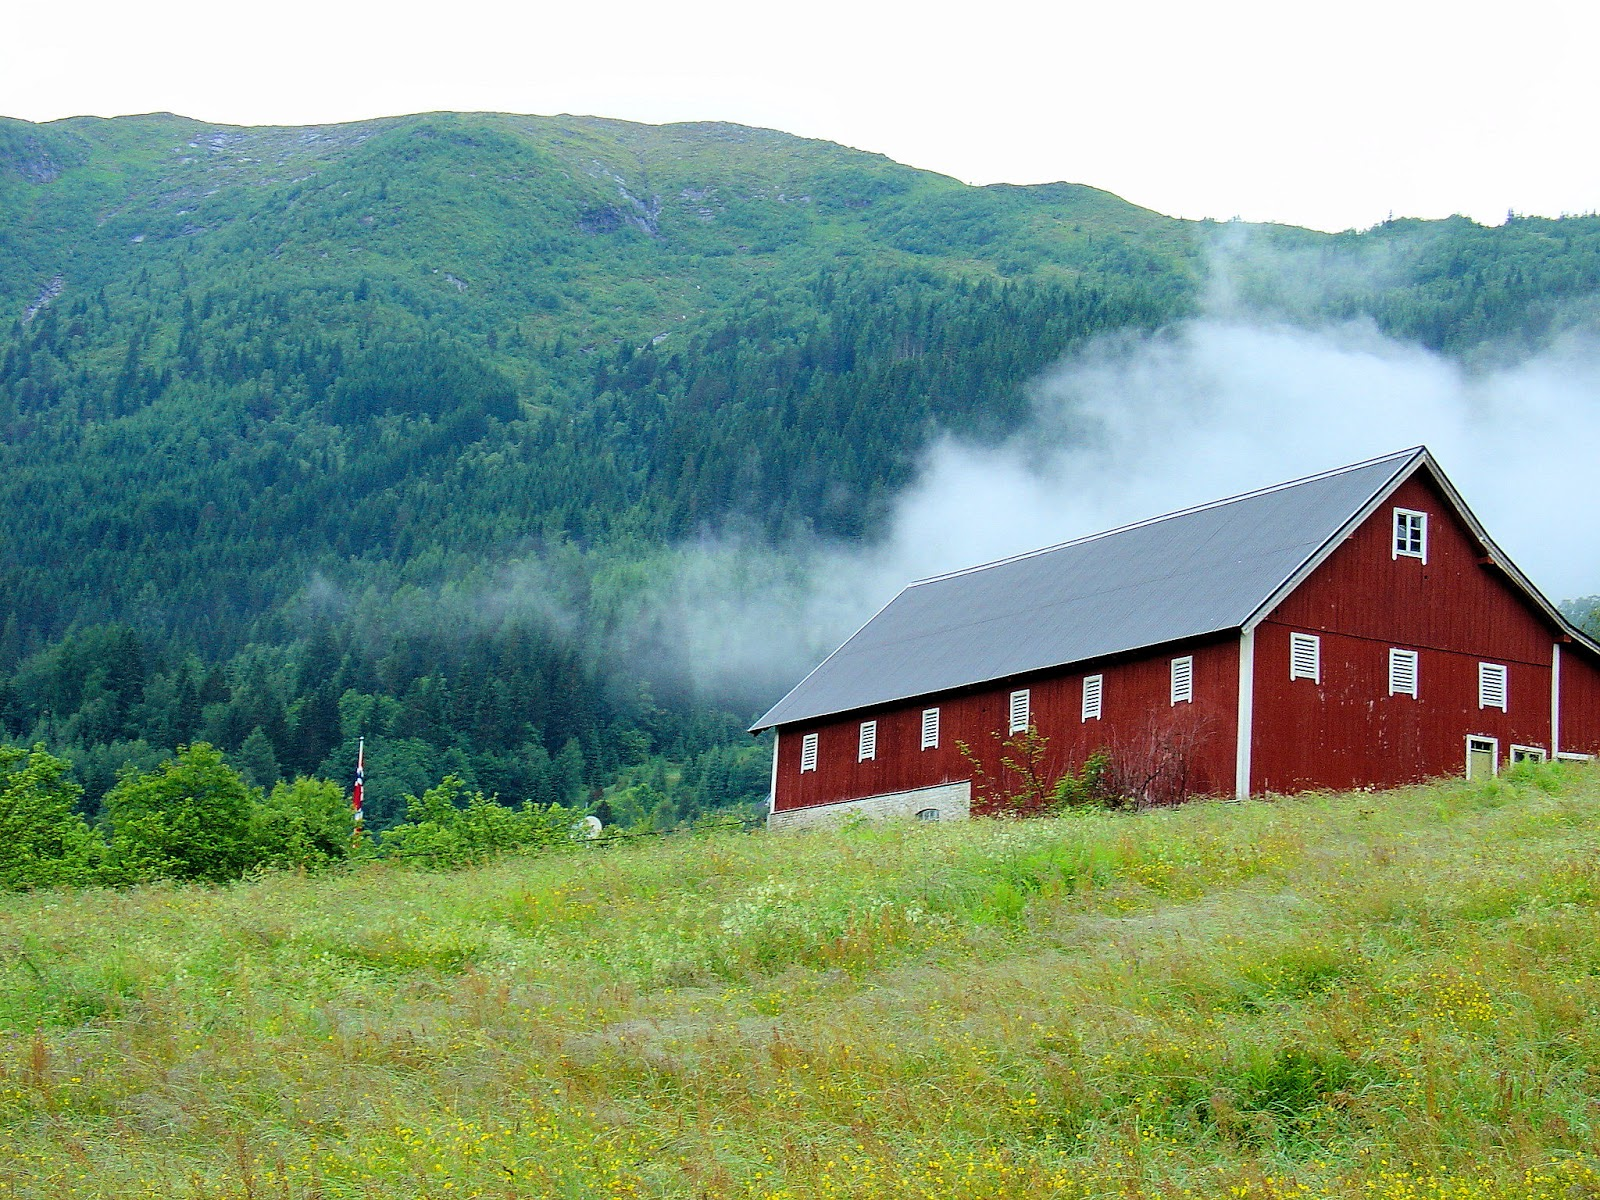 The idyllic countryside of Balestrand, Norway. Photo: EuroTravelogue™. Unauthorized use is prohibited.